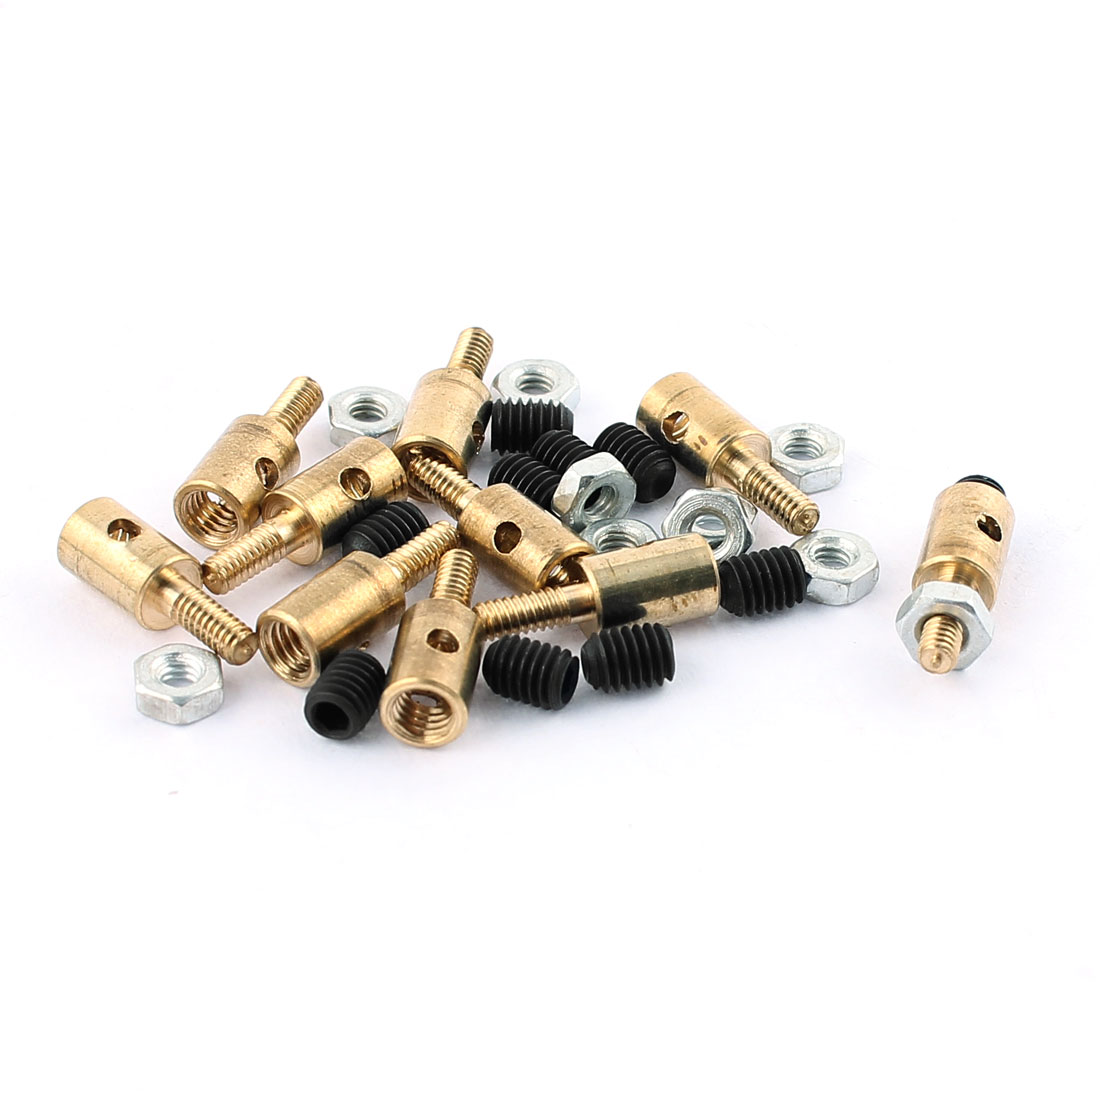 10 Pcs 4 x 1.6 x 11mm Copper Linkage Stoppers PRC Push Rod Keepers w Screws